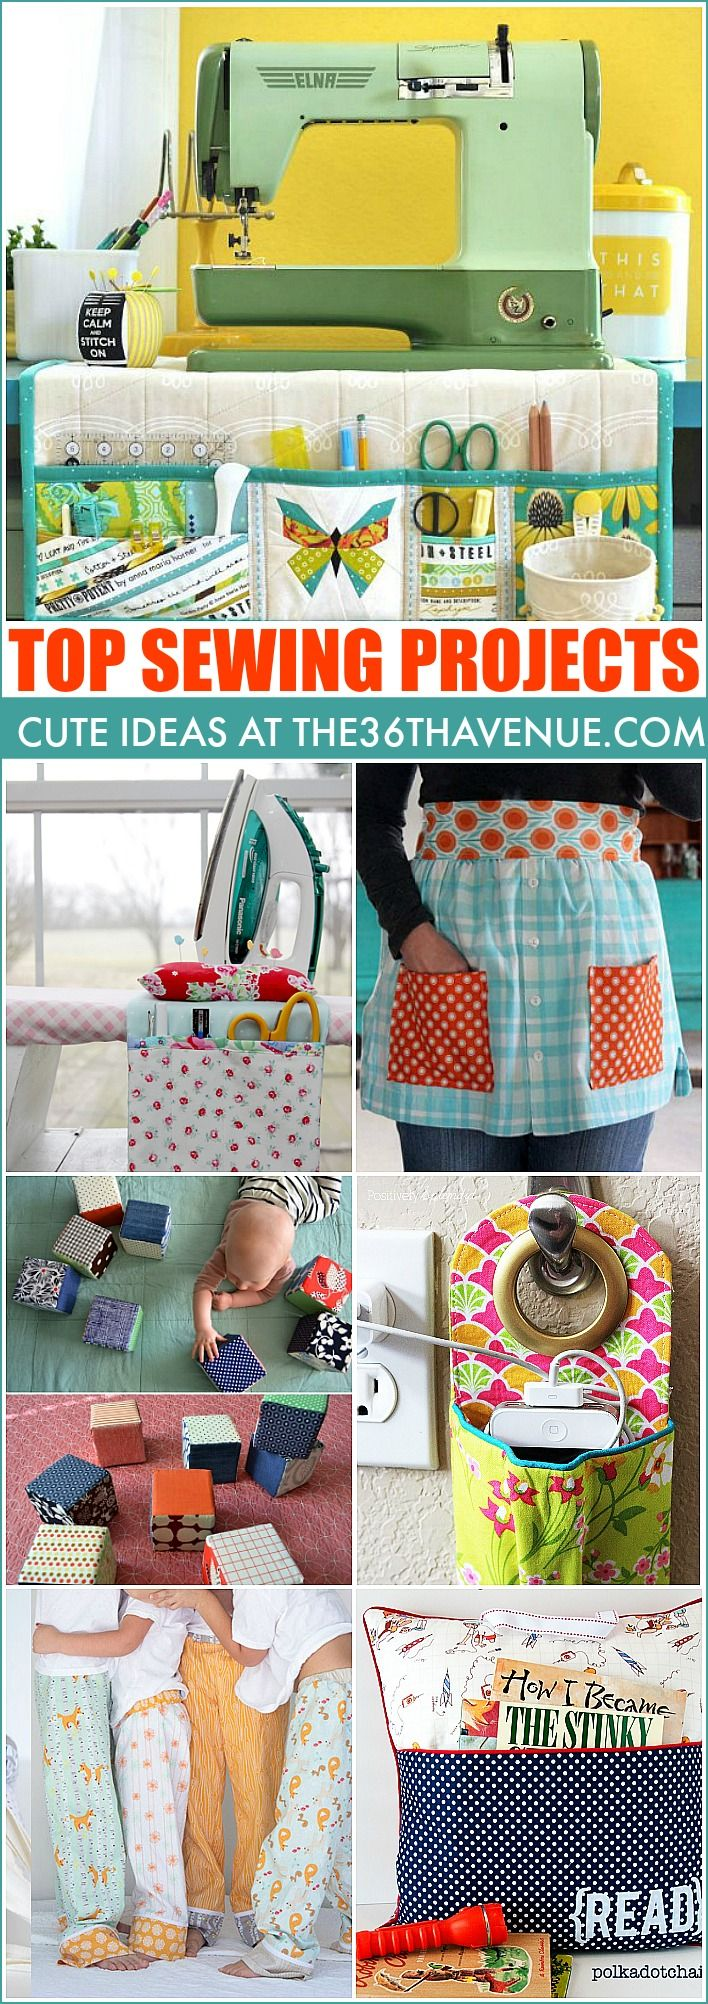 Sewing was something that I saw my mom do often. I can't even imagine the gorgeous sewing projects that she would do with the beautiful fabrics and patterns that we can find today. I love fabric and smart ideas so today I am combining both and sharing some of my favorite sewing projects ever. These ideas would …